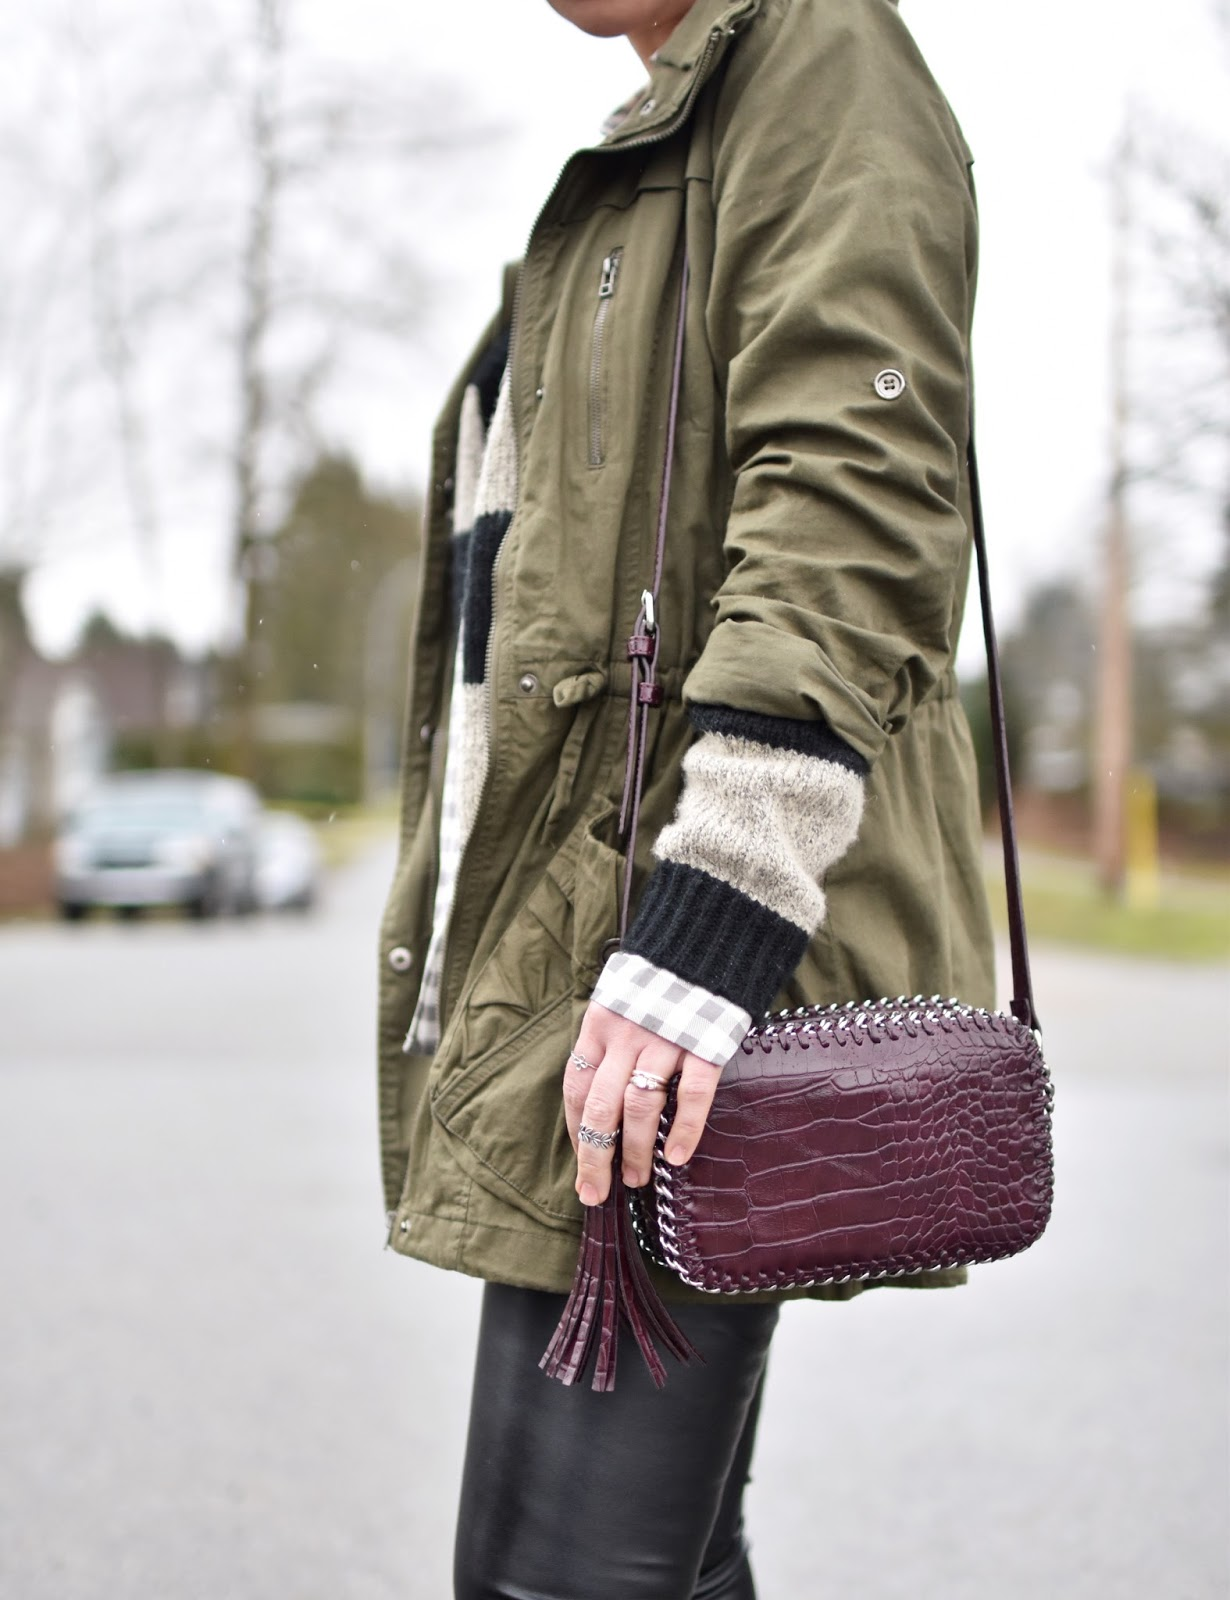 Monika Faulkner outfit inspiration - gingham shirt, striped cardigan, army-style parka, cross-body bag